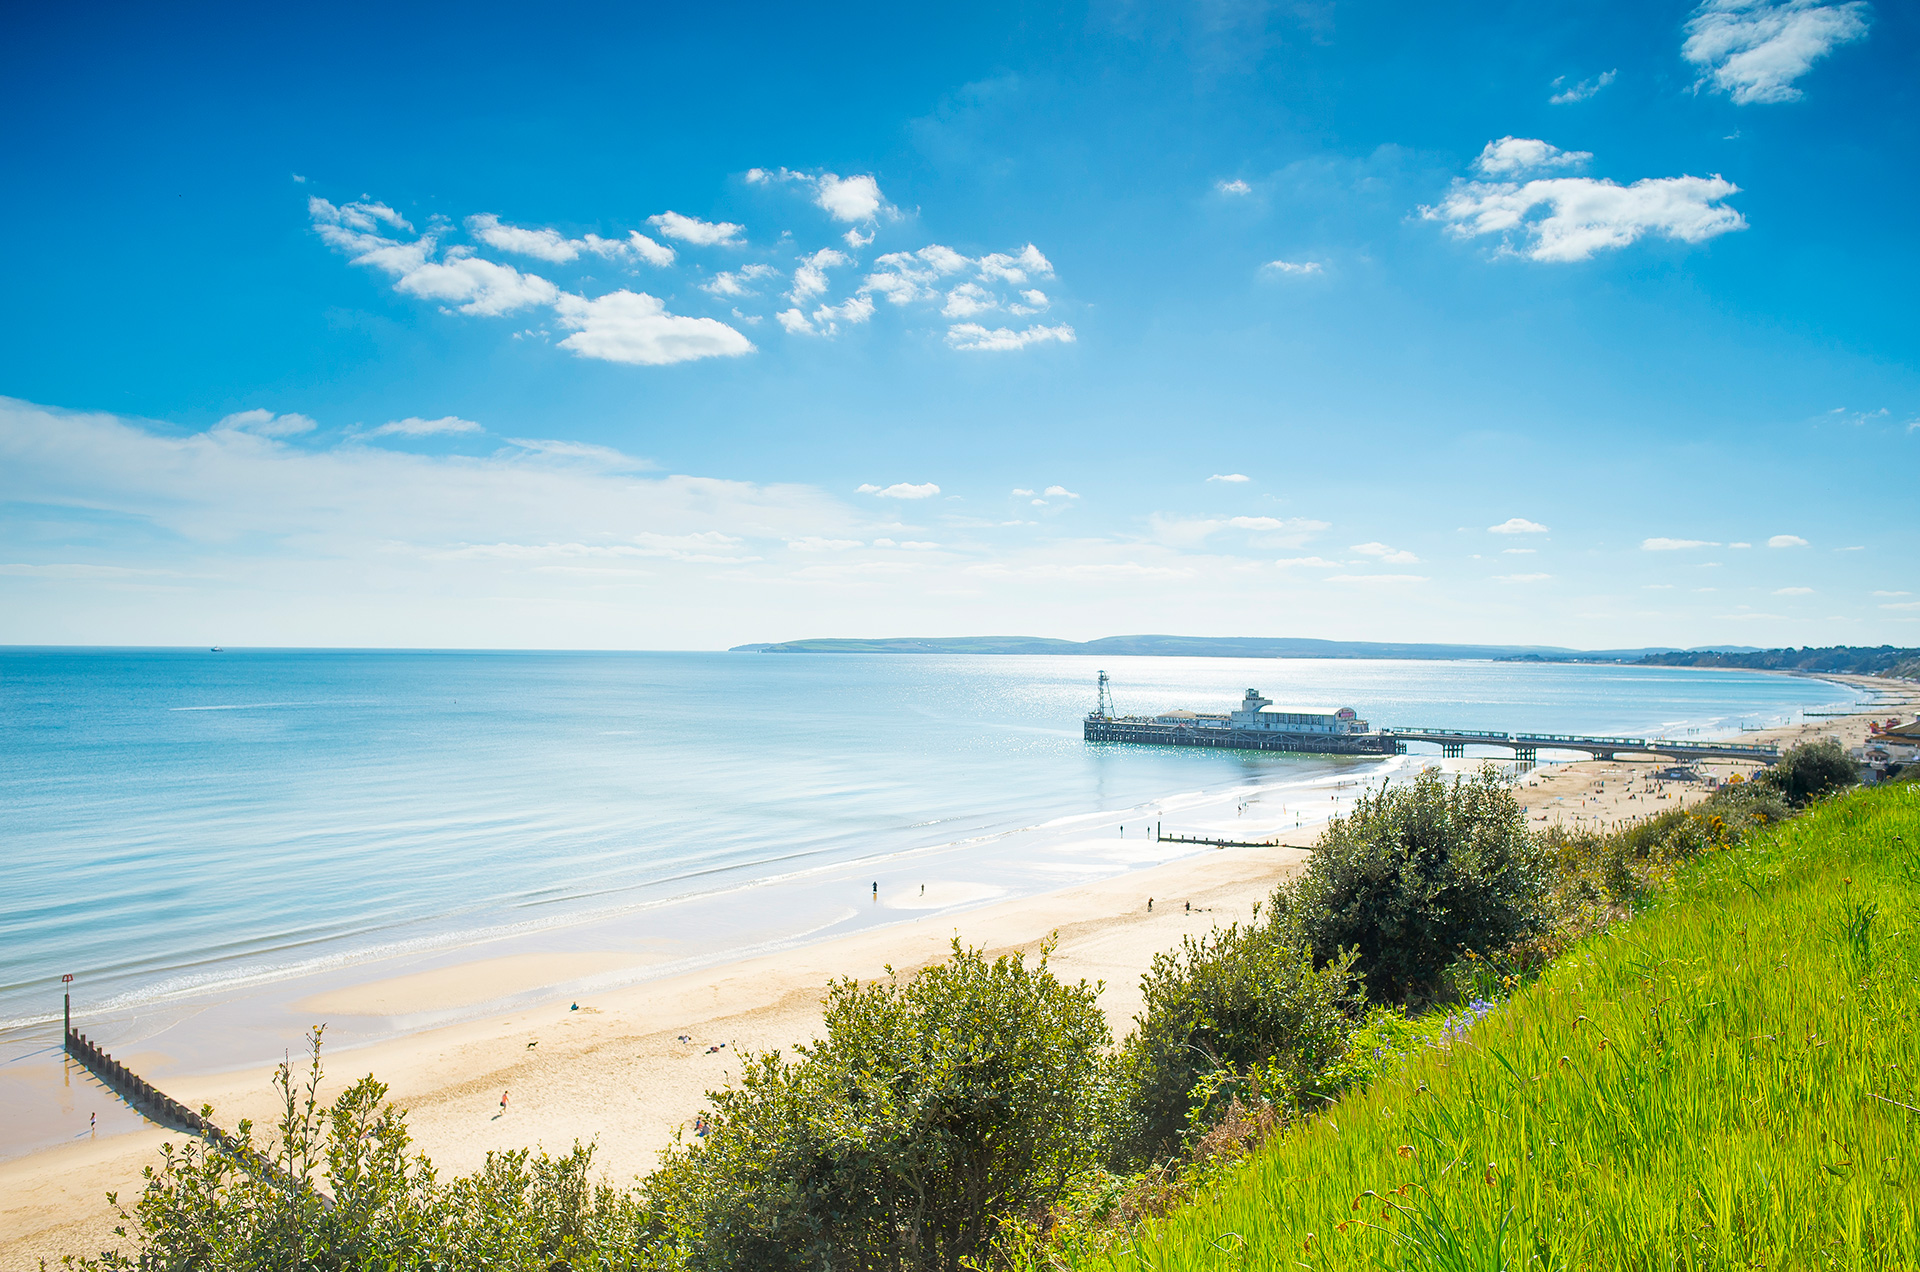 Stunning sunny day of Bournemouth seafront and pier